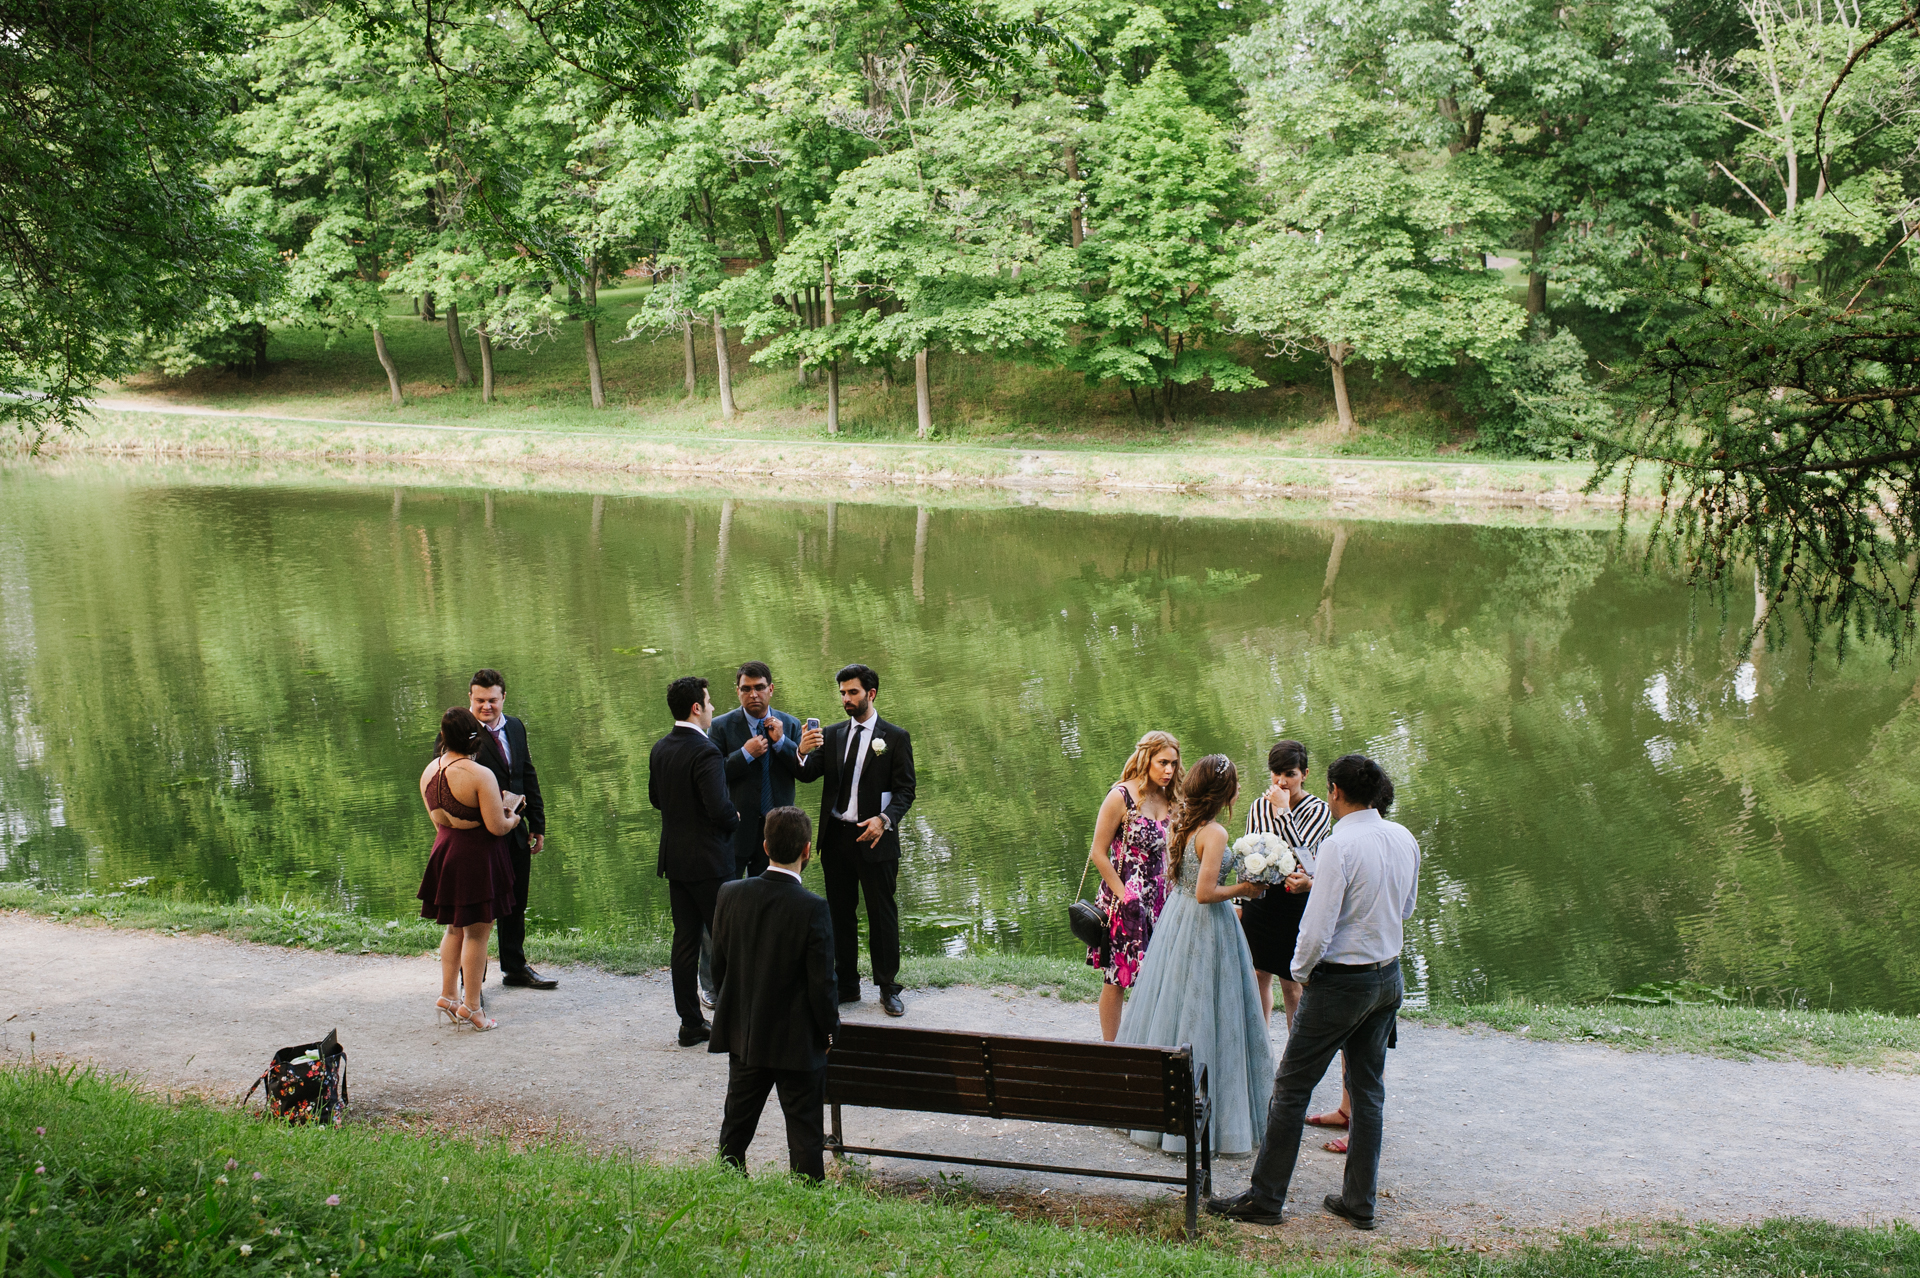 Washington Park, Albany, New York Wedding Elopement Image | The bride and groom visit with friends